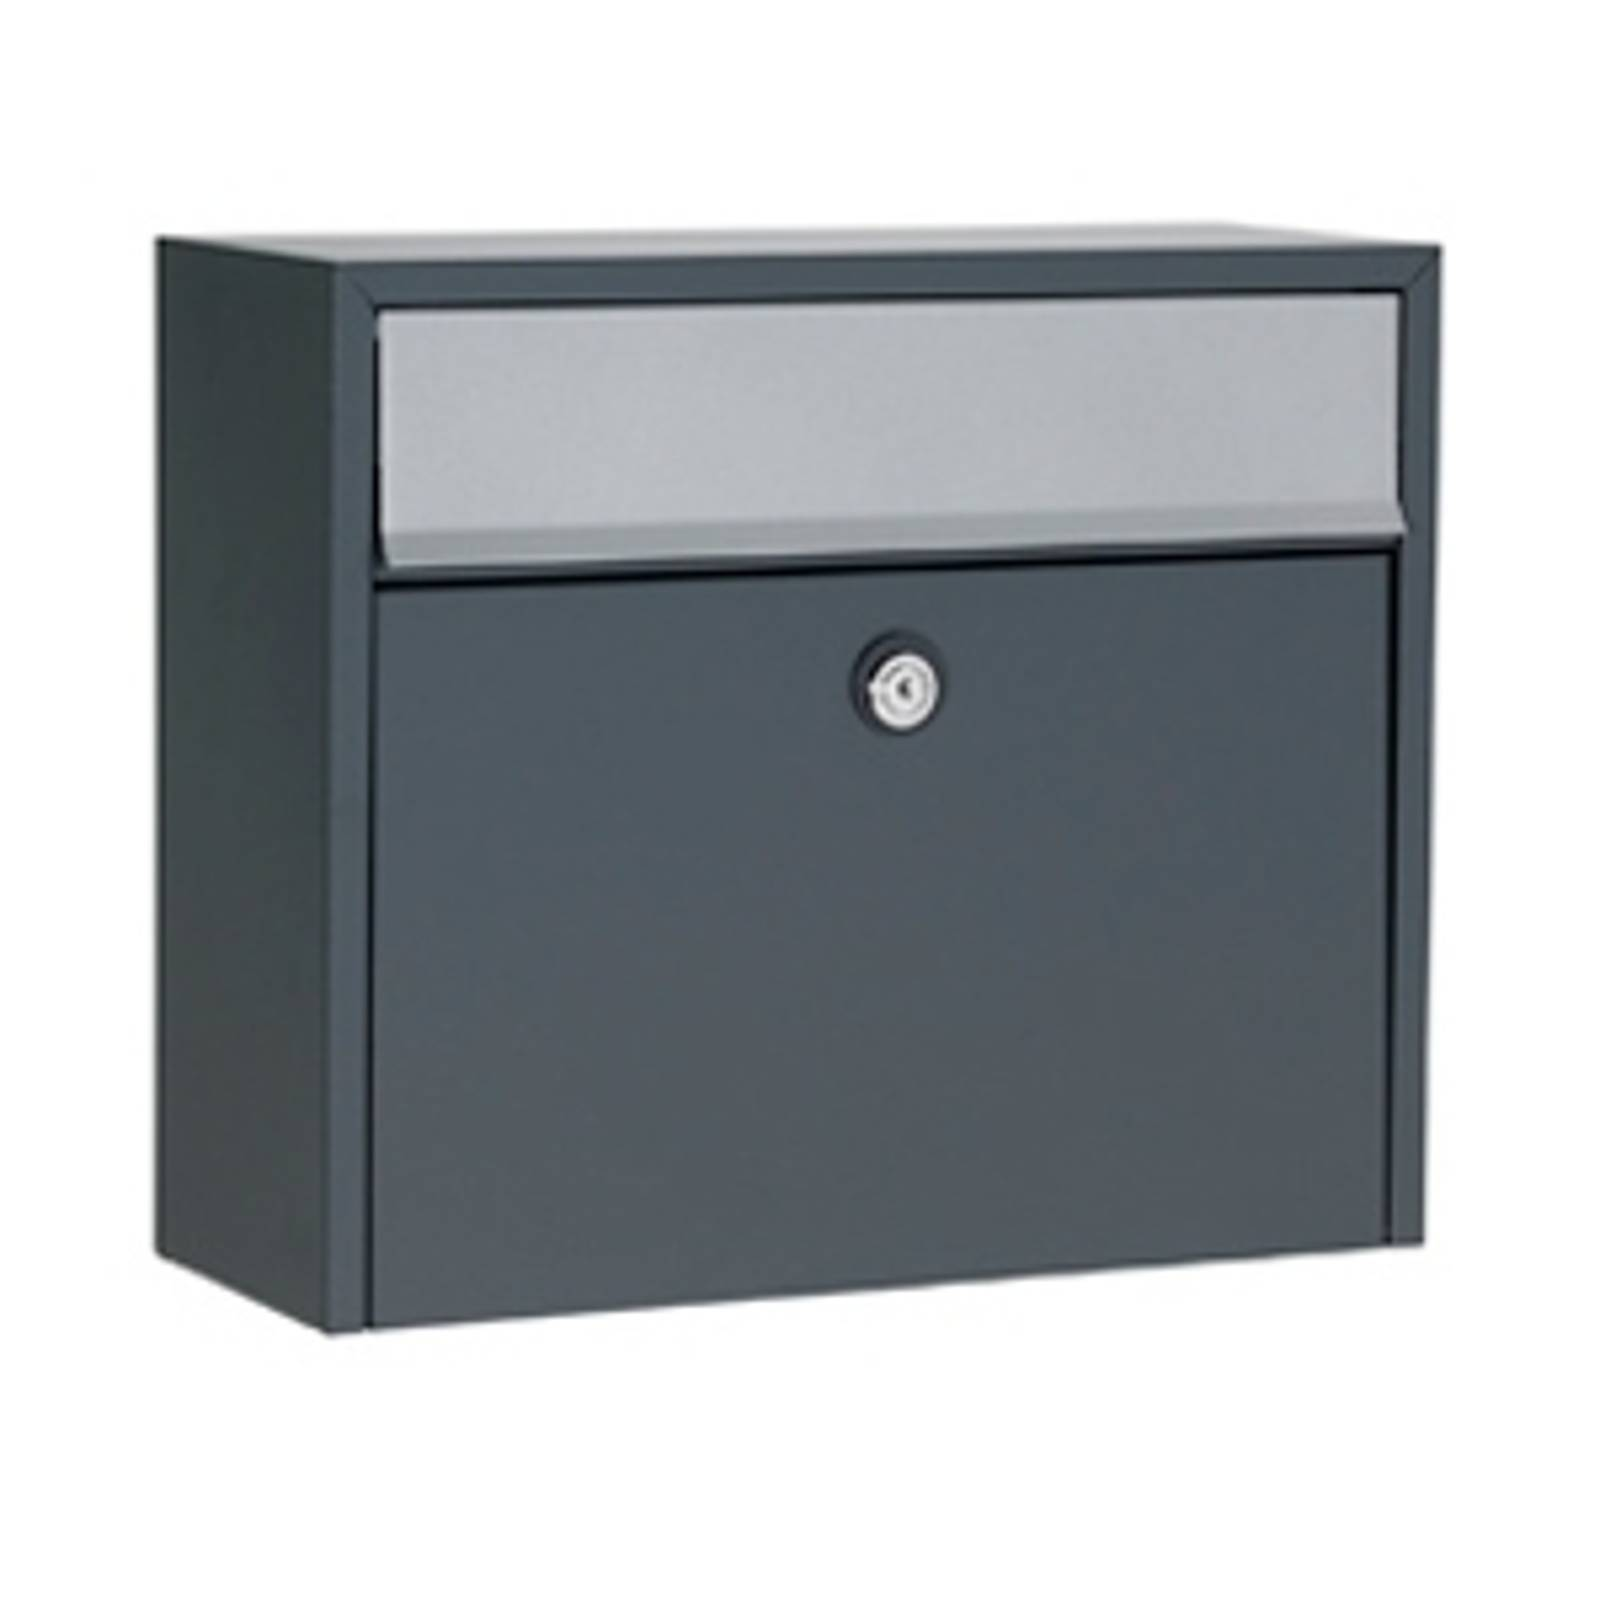 Simple letterbox LT150, anthracite, Euro lock from Juliana